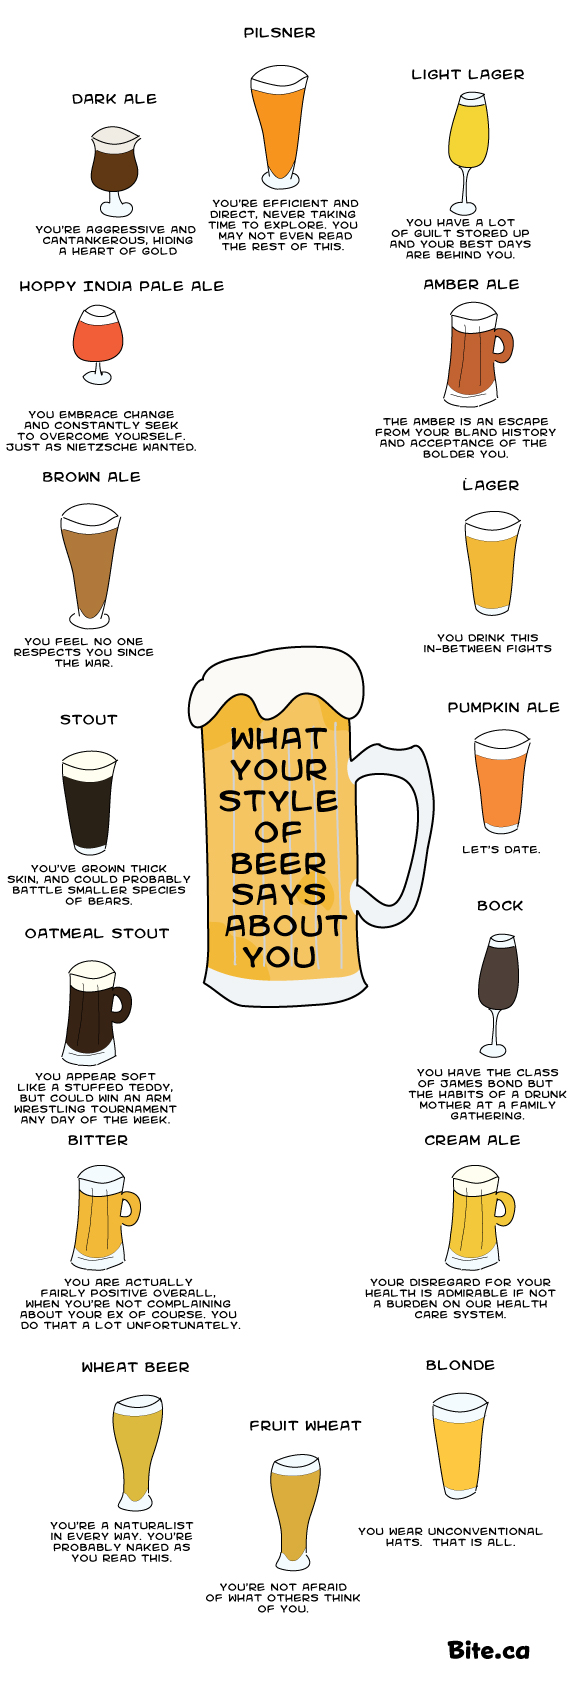 what-r-beer-says-about-you